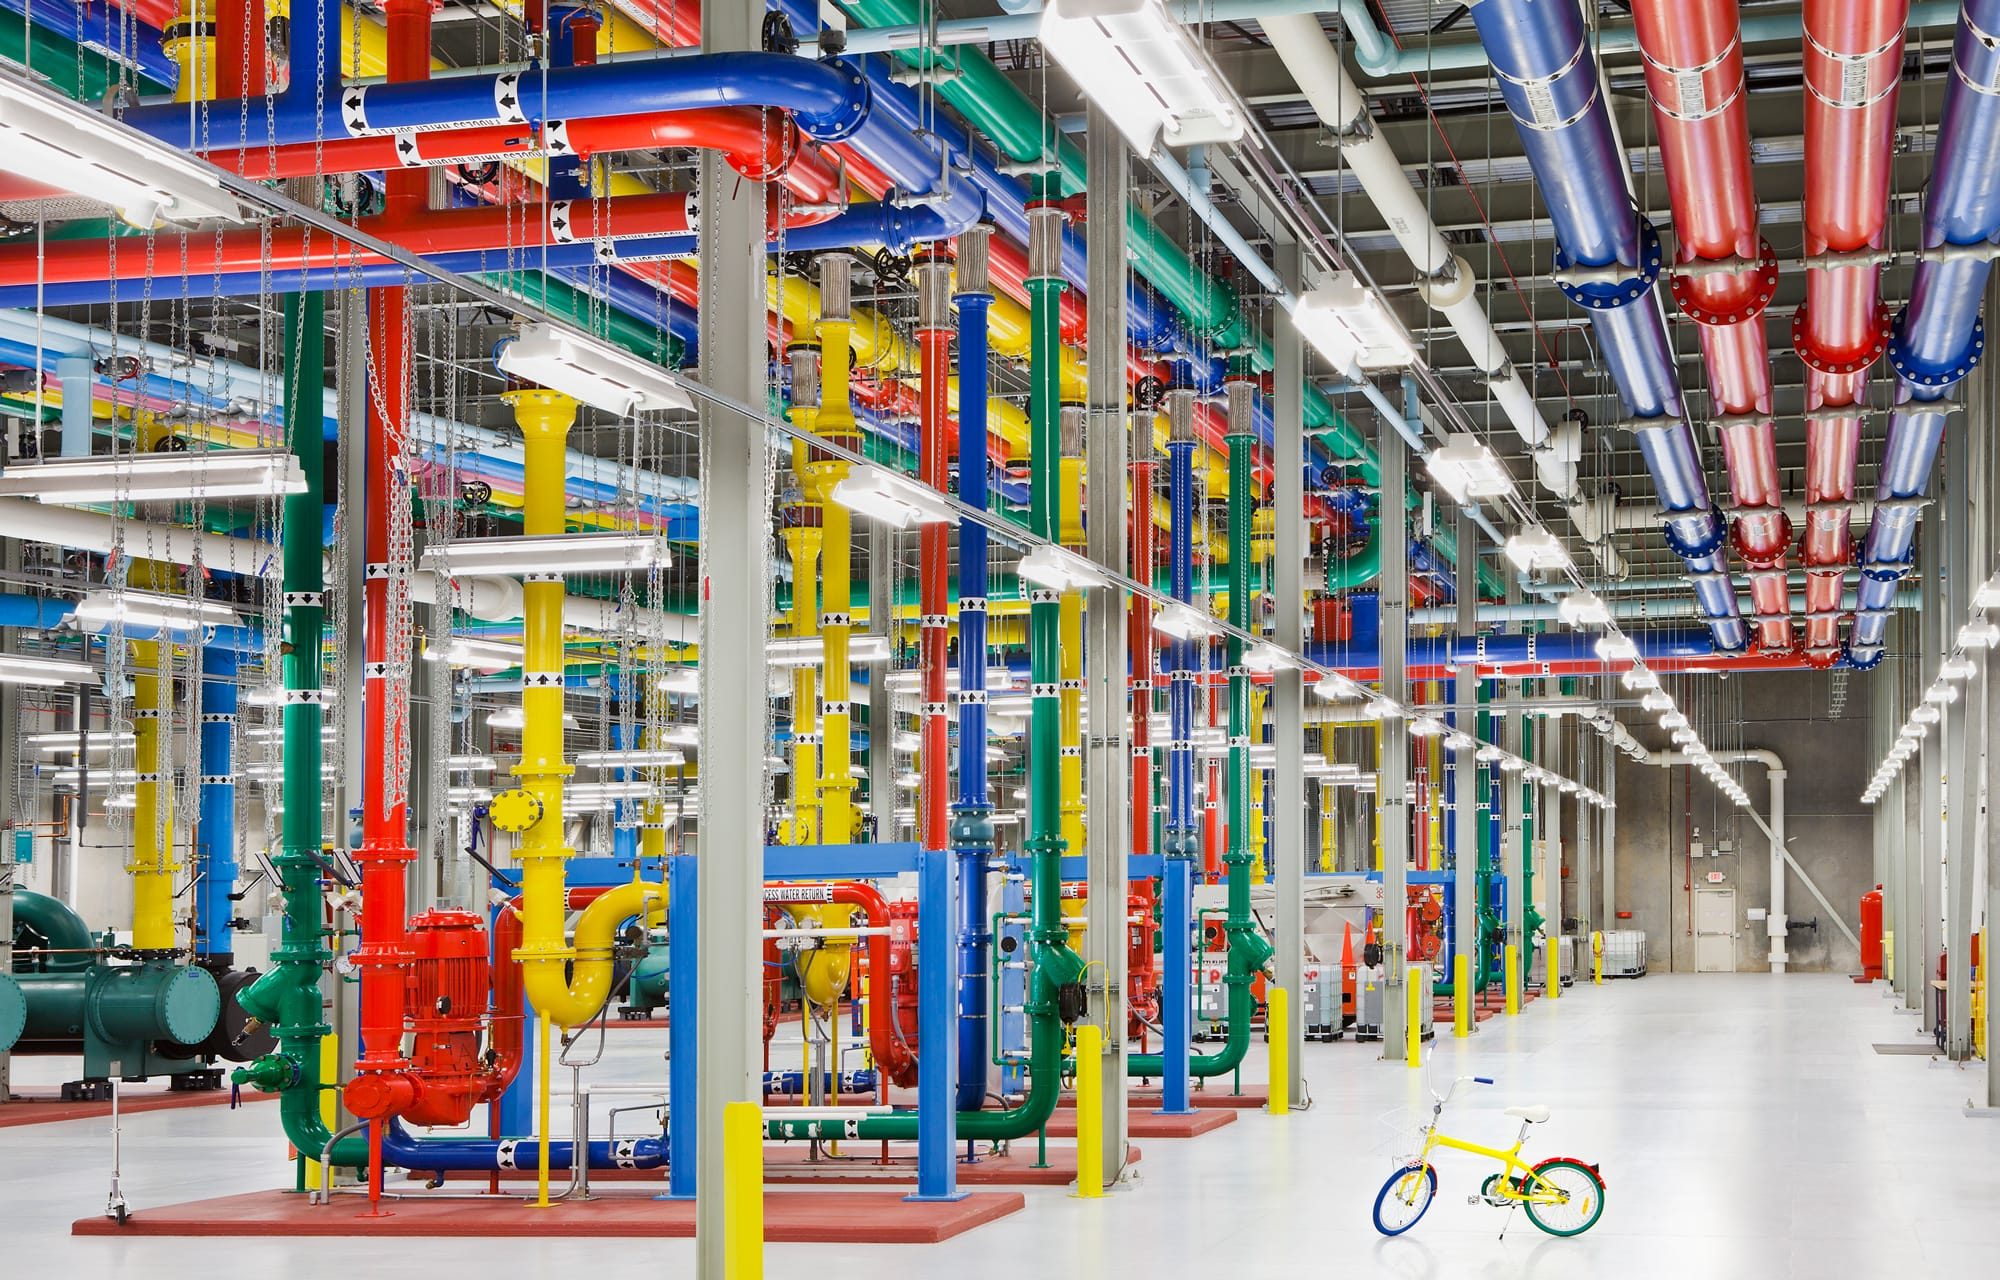 Colorful pipes and a yellow bike inside Google Cloud Platform's data center.